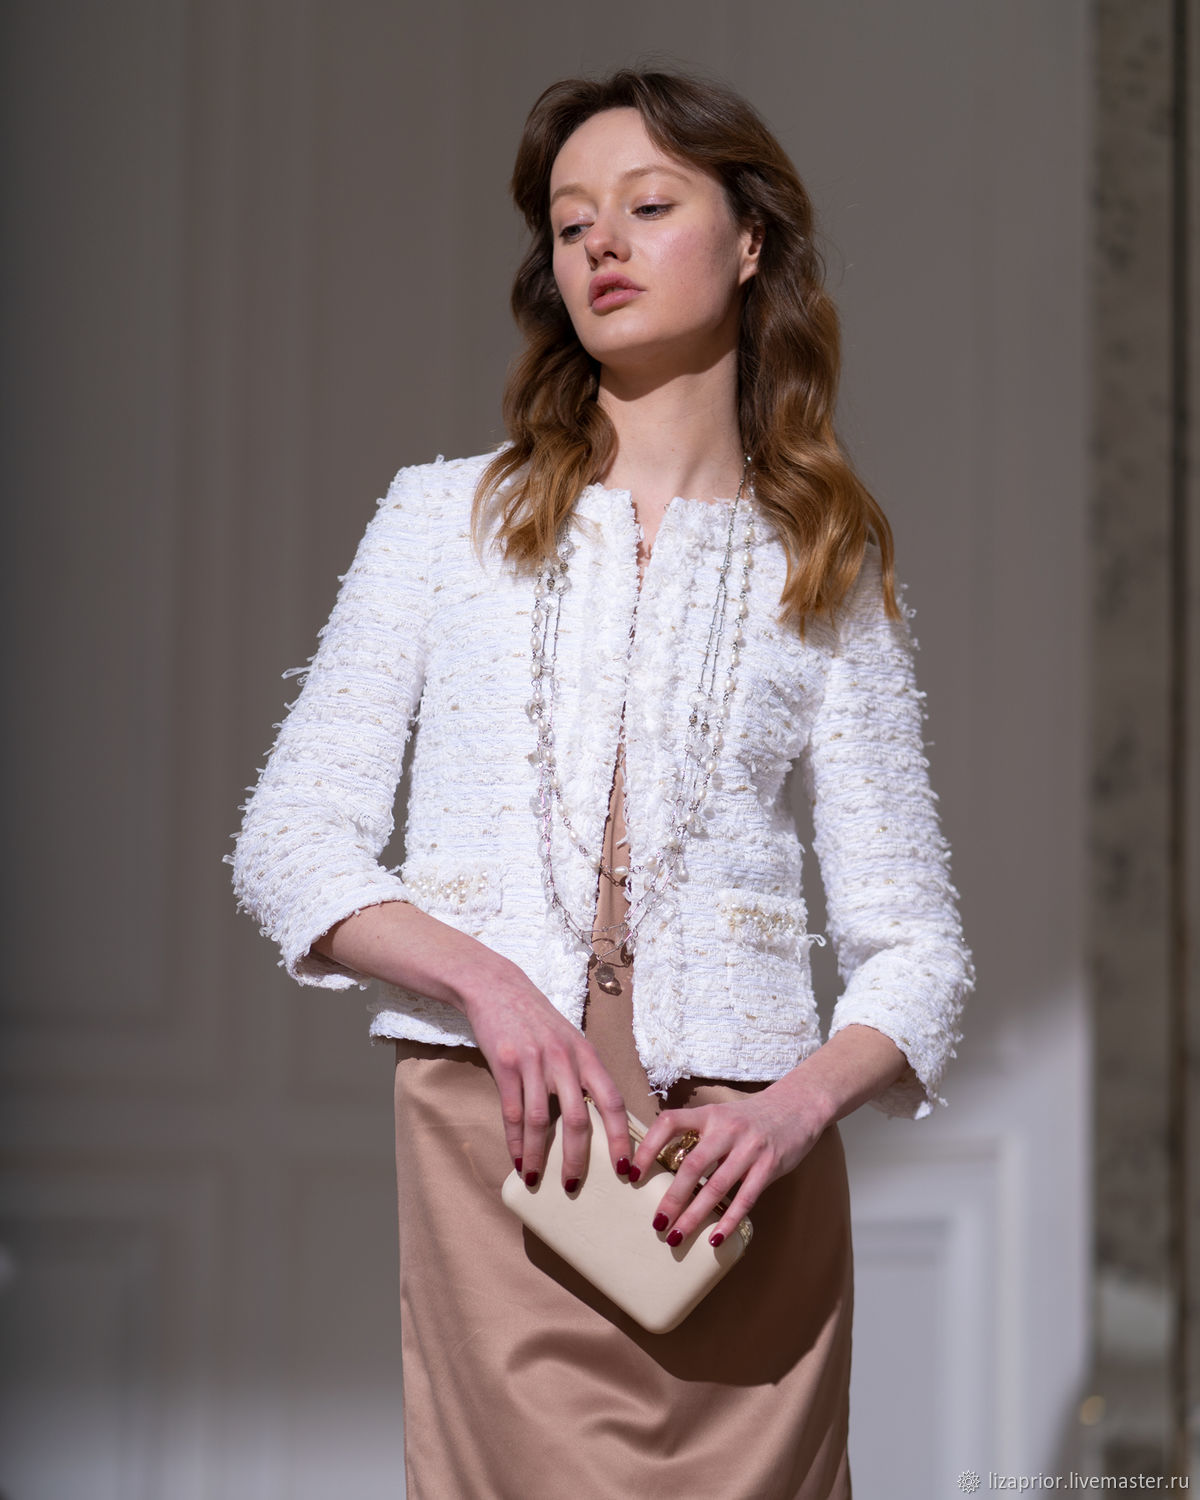 Chanel style jacket in white tweed with pearls, Jackets, Moscow,  Фото №1